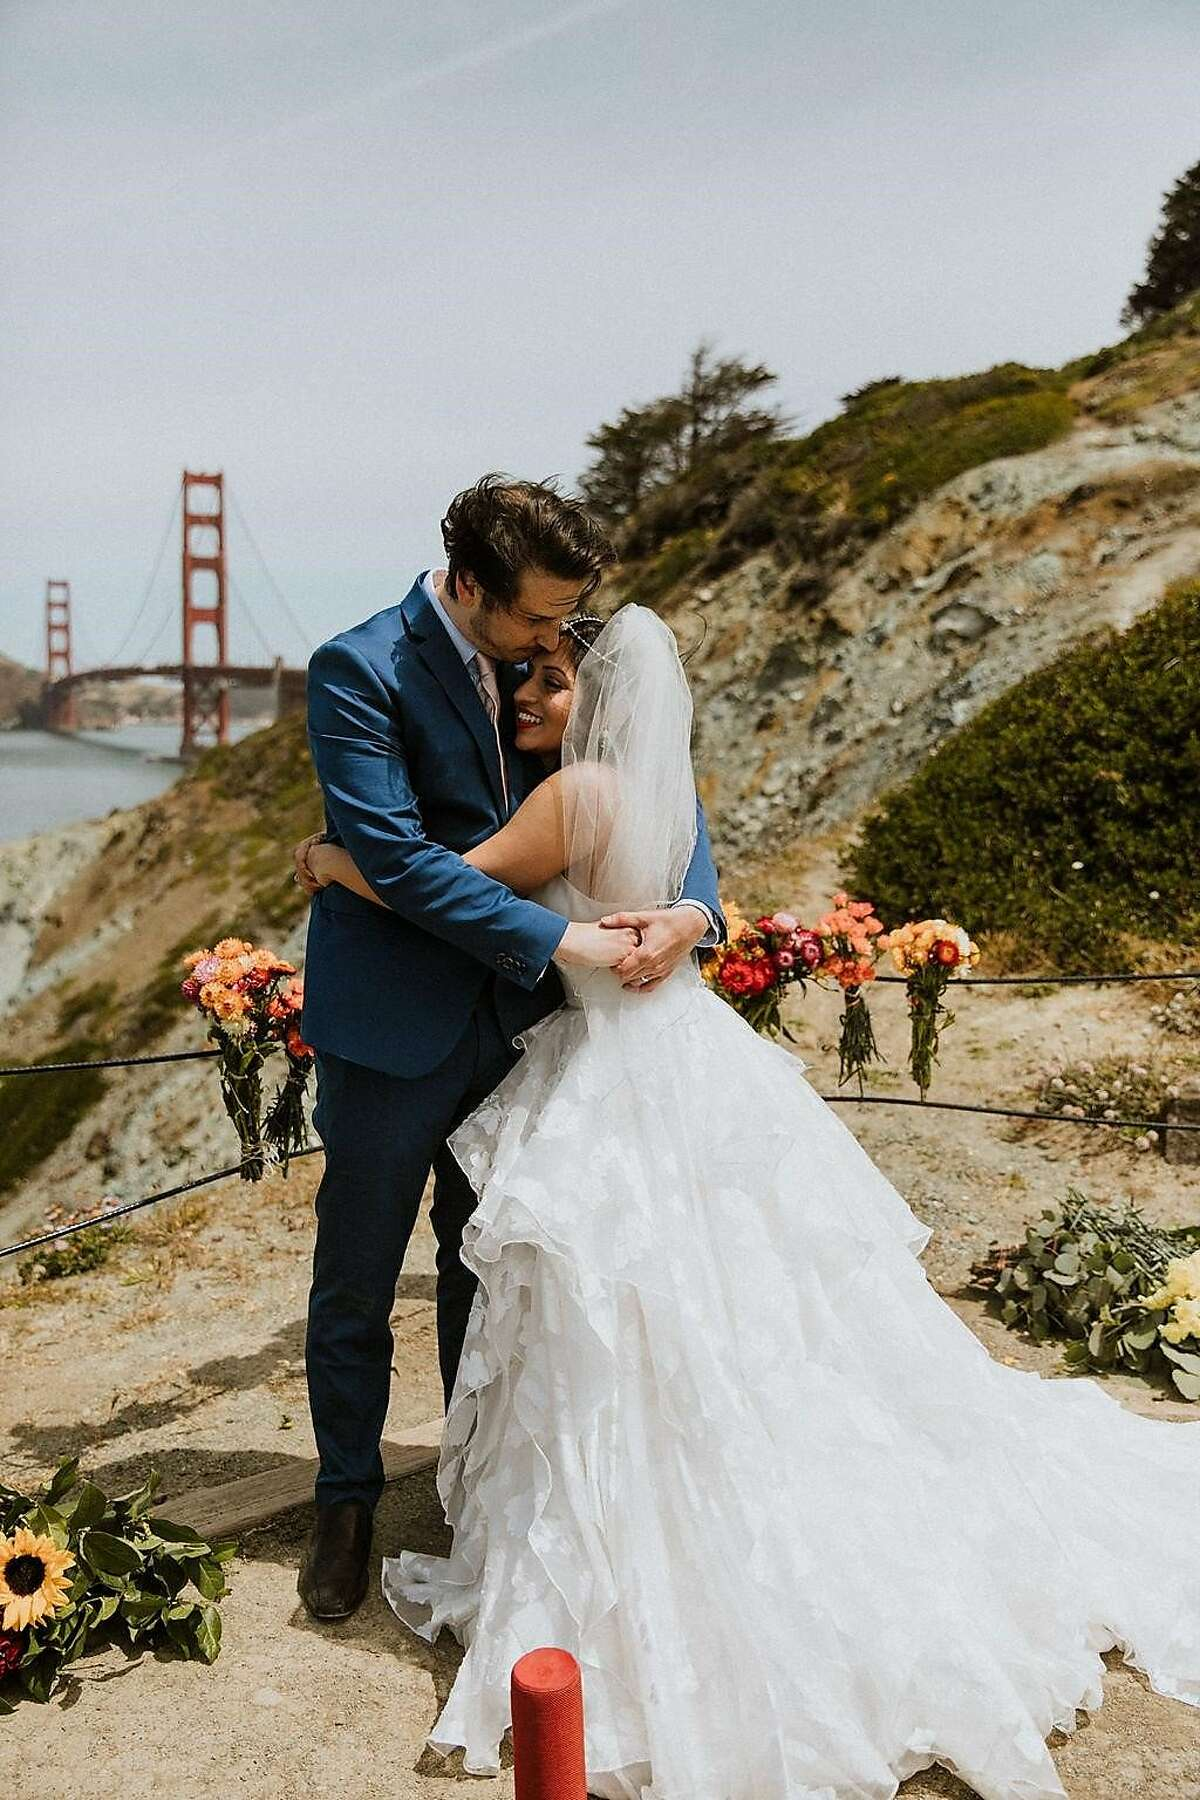 Divya Dhar Cohen and Jack Cohen at their May 2020 wedding in San Francisco. Despite the shelter-in-place order, which kept them from having their friends and families with them, they orchestrated a virtual wedding with 200 guests logging in to celebrate.